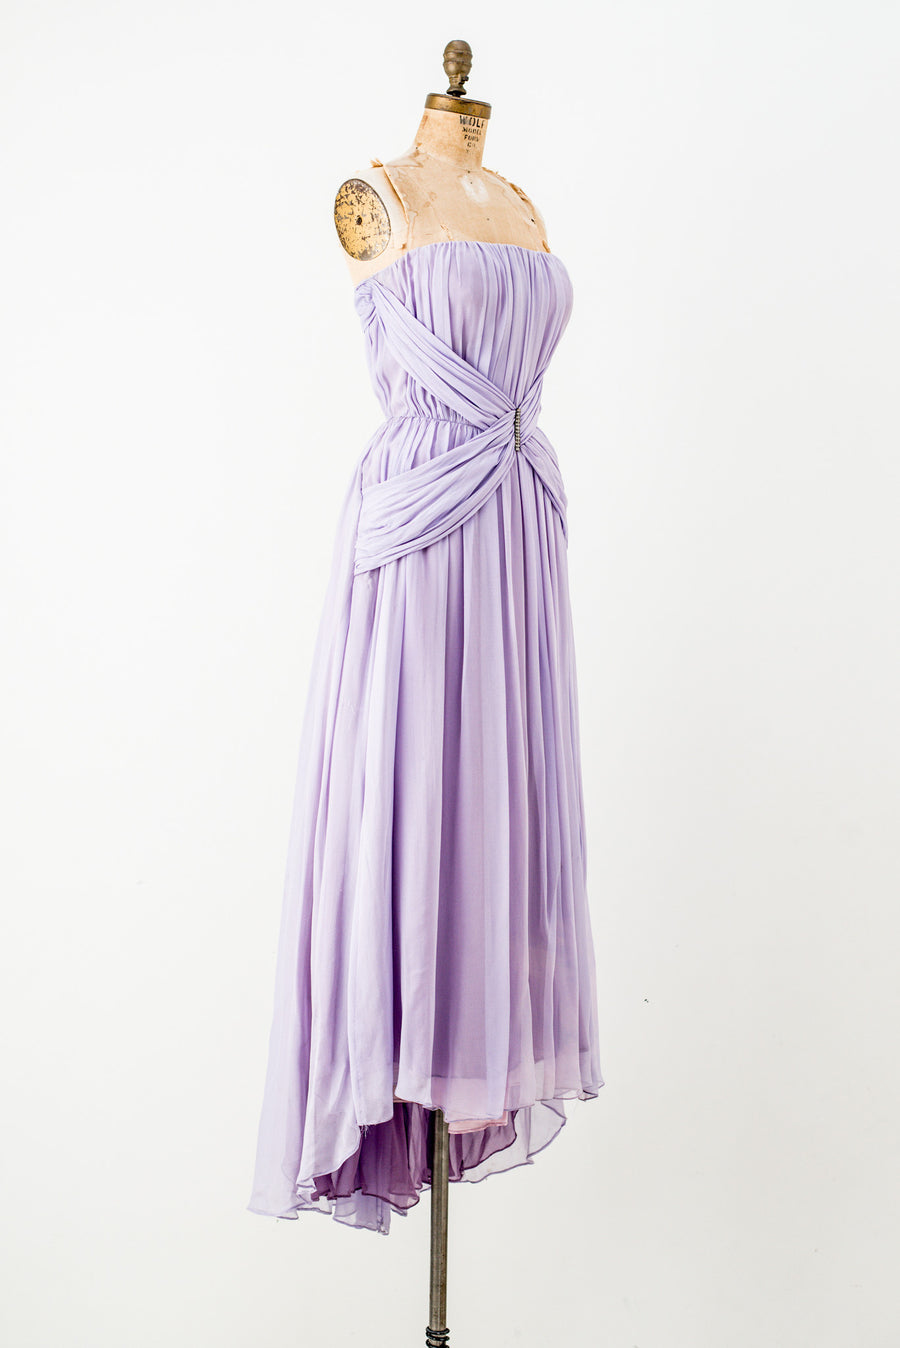 Vintage Strapless Lavender Dress - S